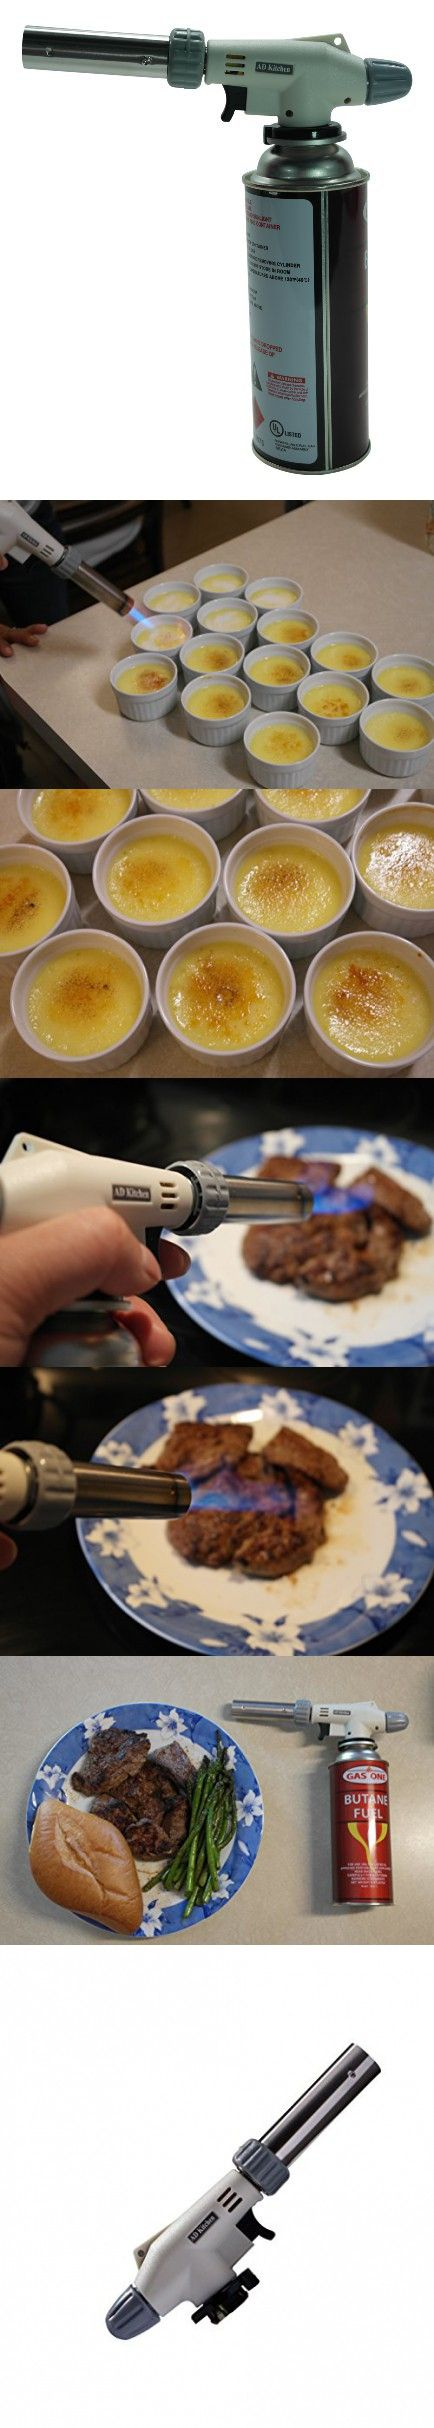 AD Kitchenware Cooking Torch Burner, Multiple Function Flame Gun AD-8805